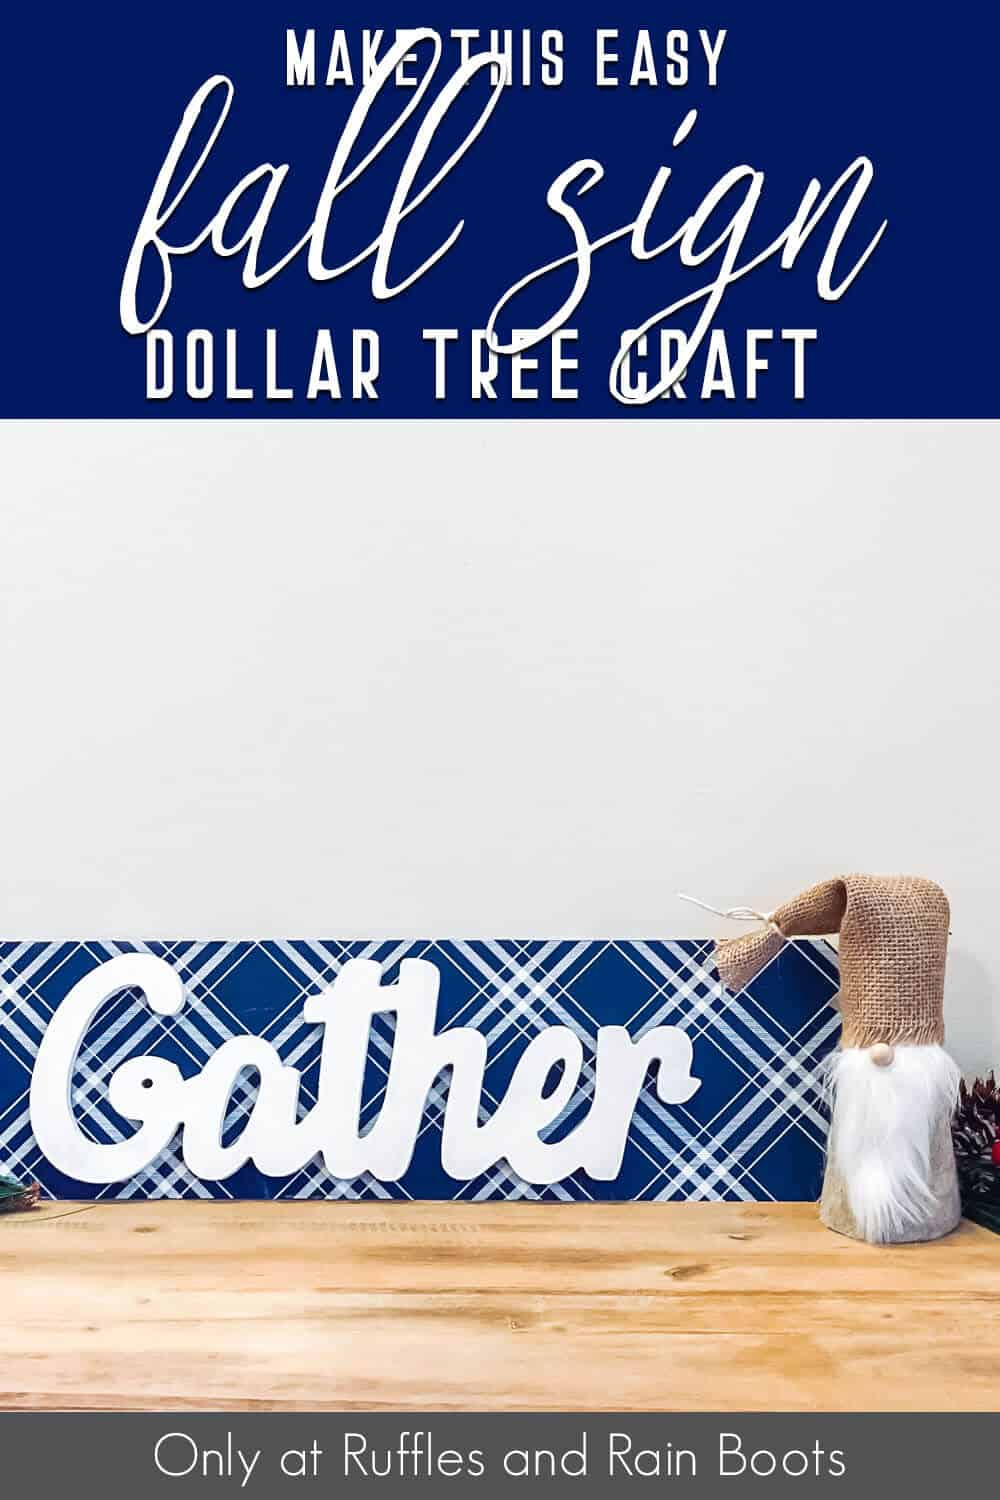 dollar tree craft with text which reads make this easy fall sign dollar tree craft